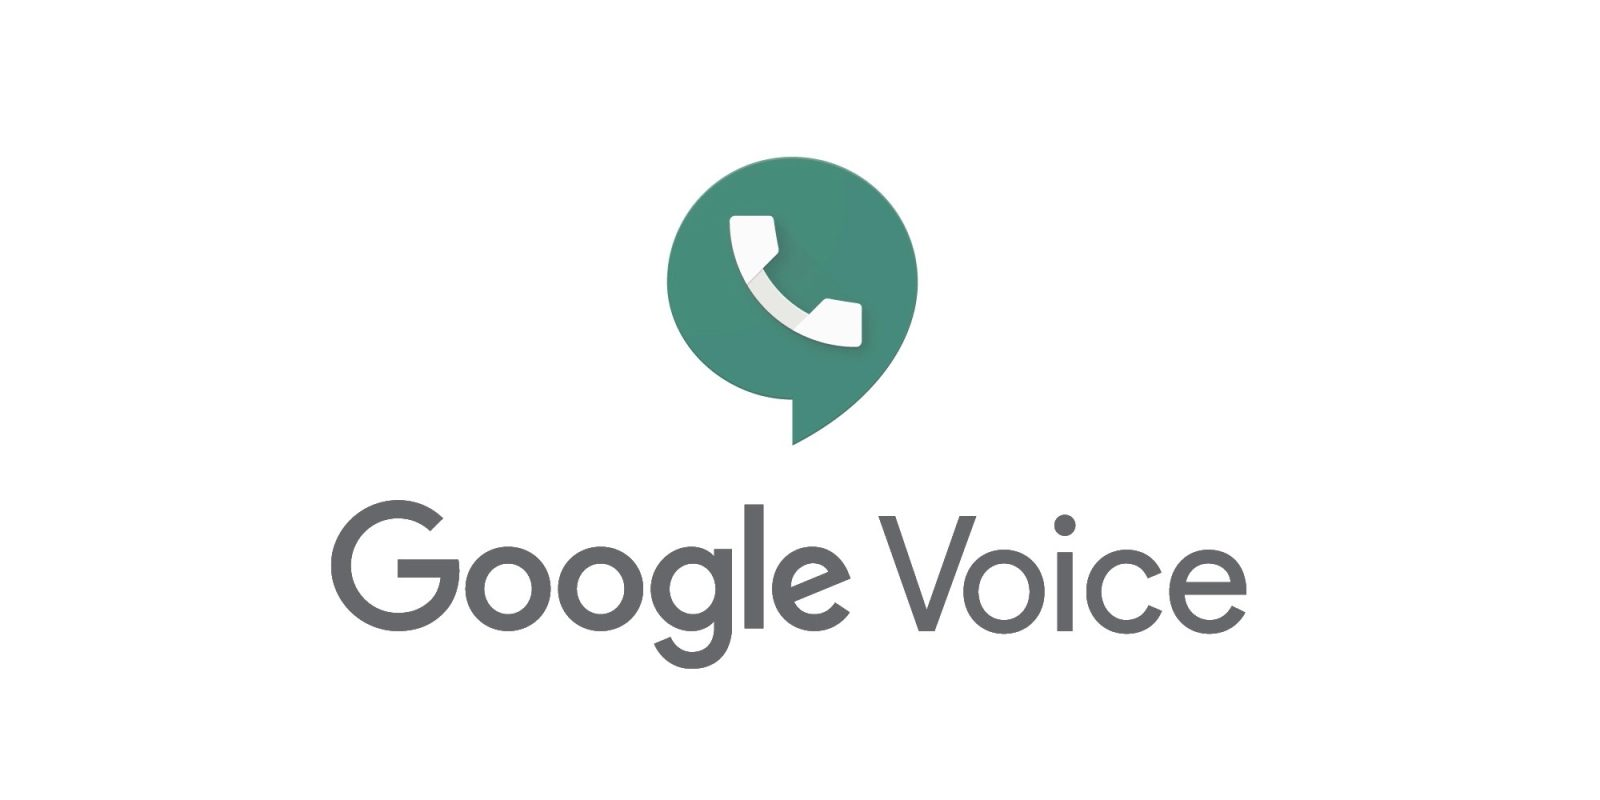 Google Voice users complain of issues w/ incoming calls - 9to5Google